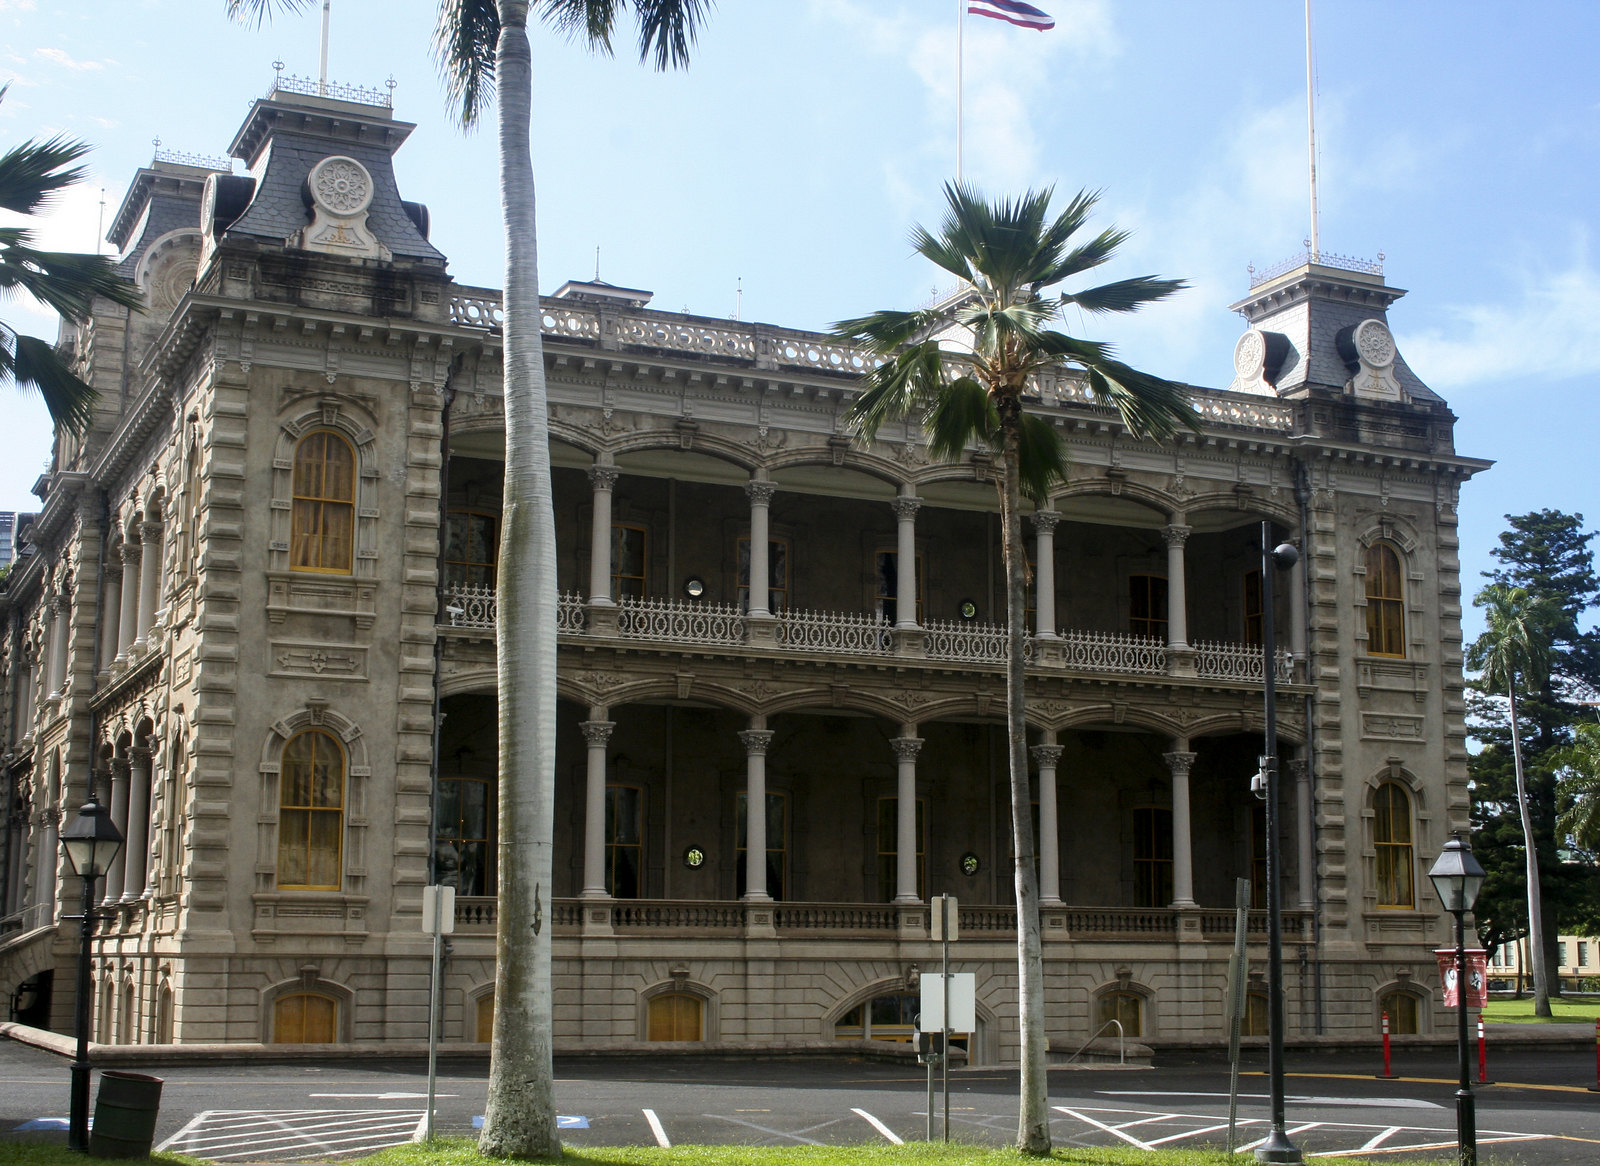 Iolani Palace. From Digging Deeper into Hawaiian History on the Hawai'i Monarchs Tour